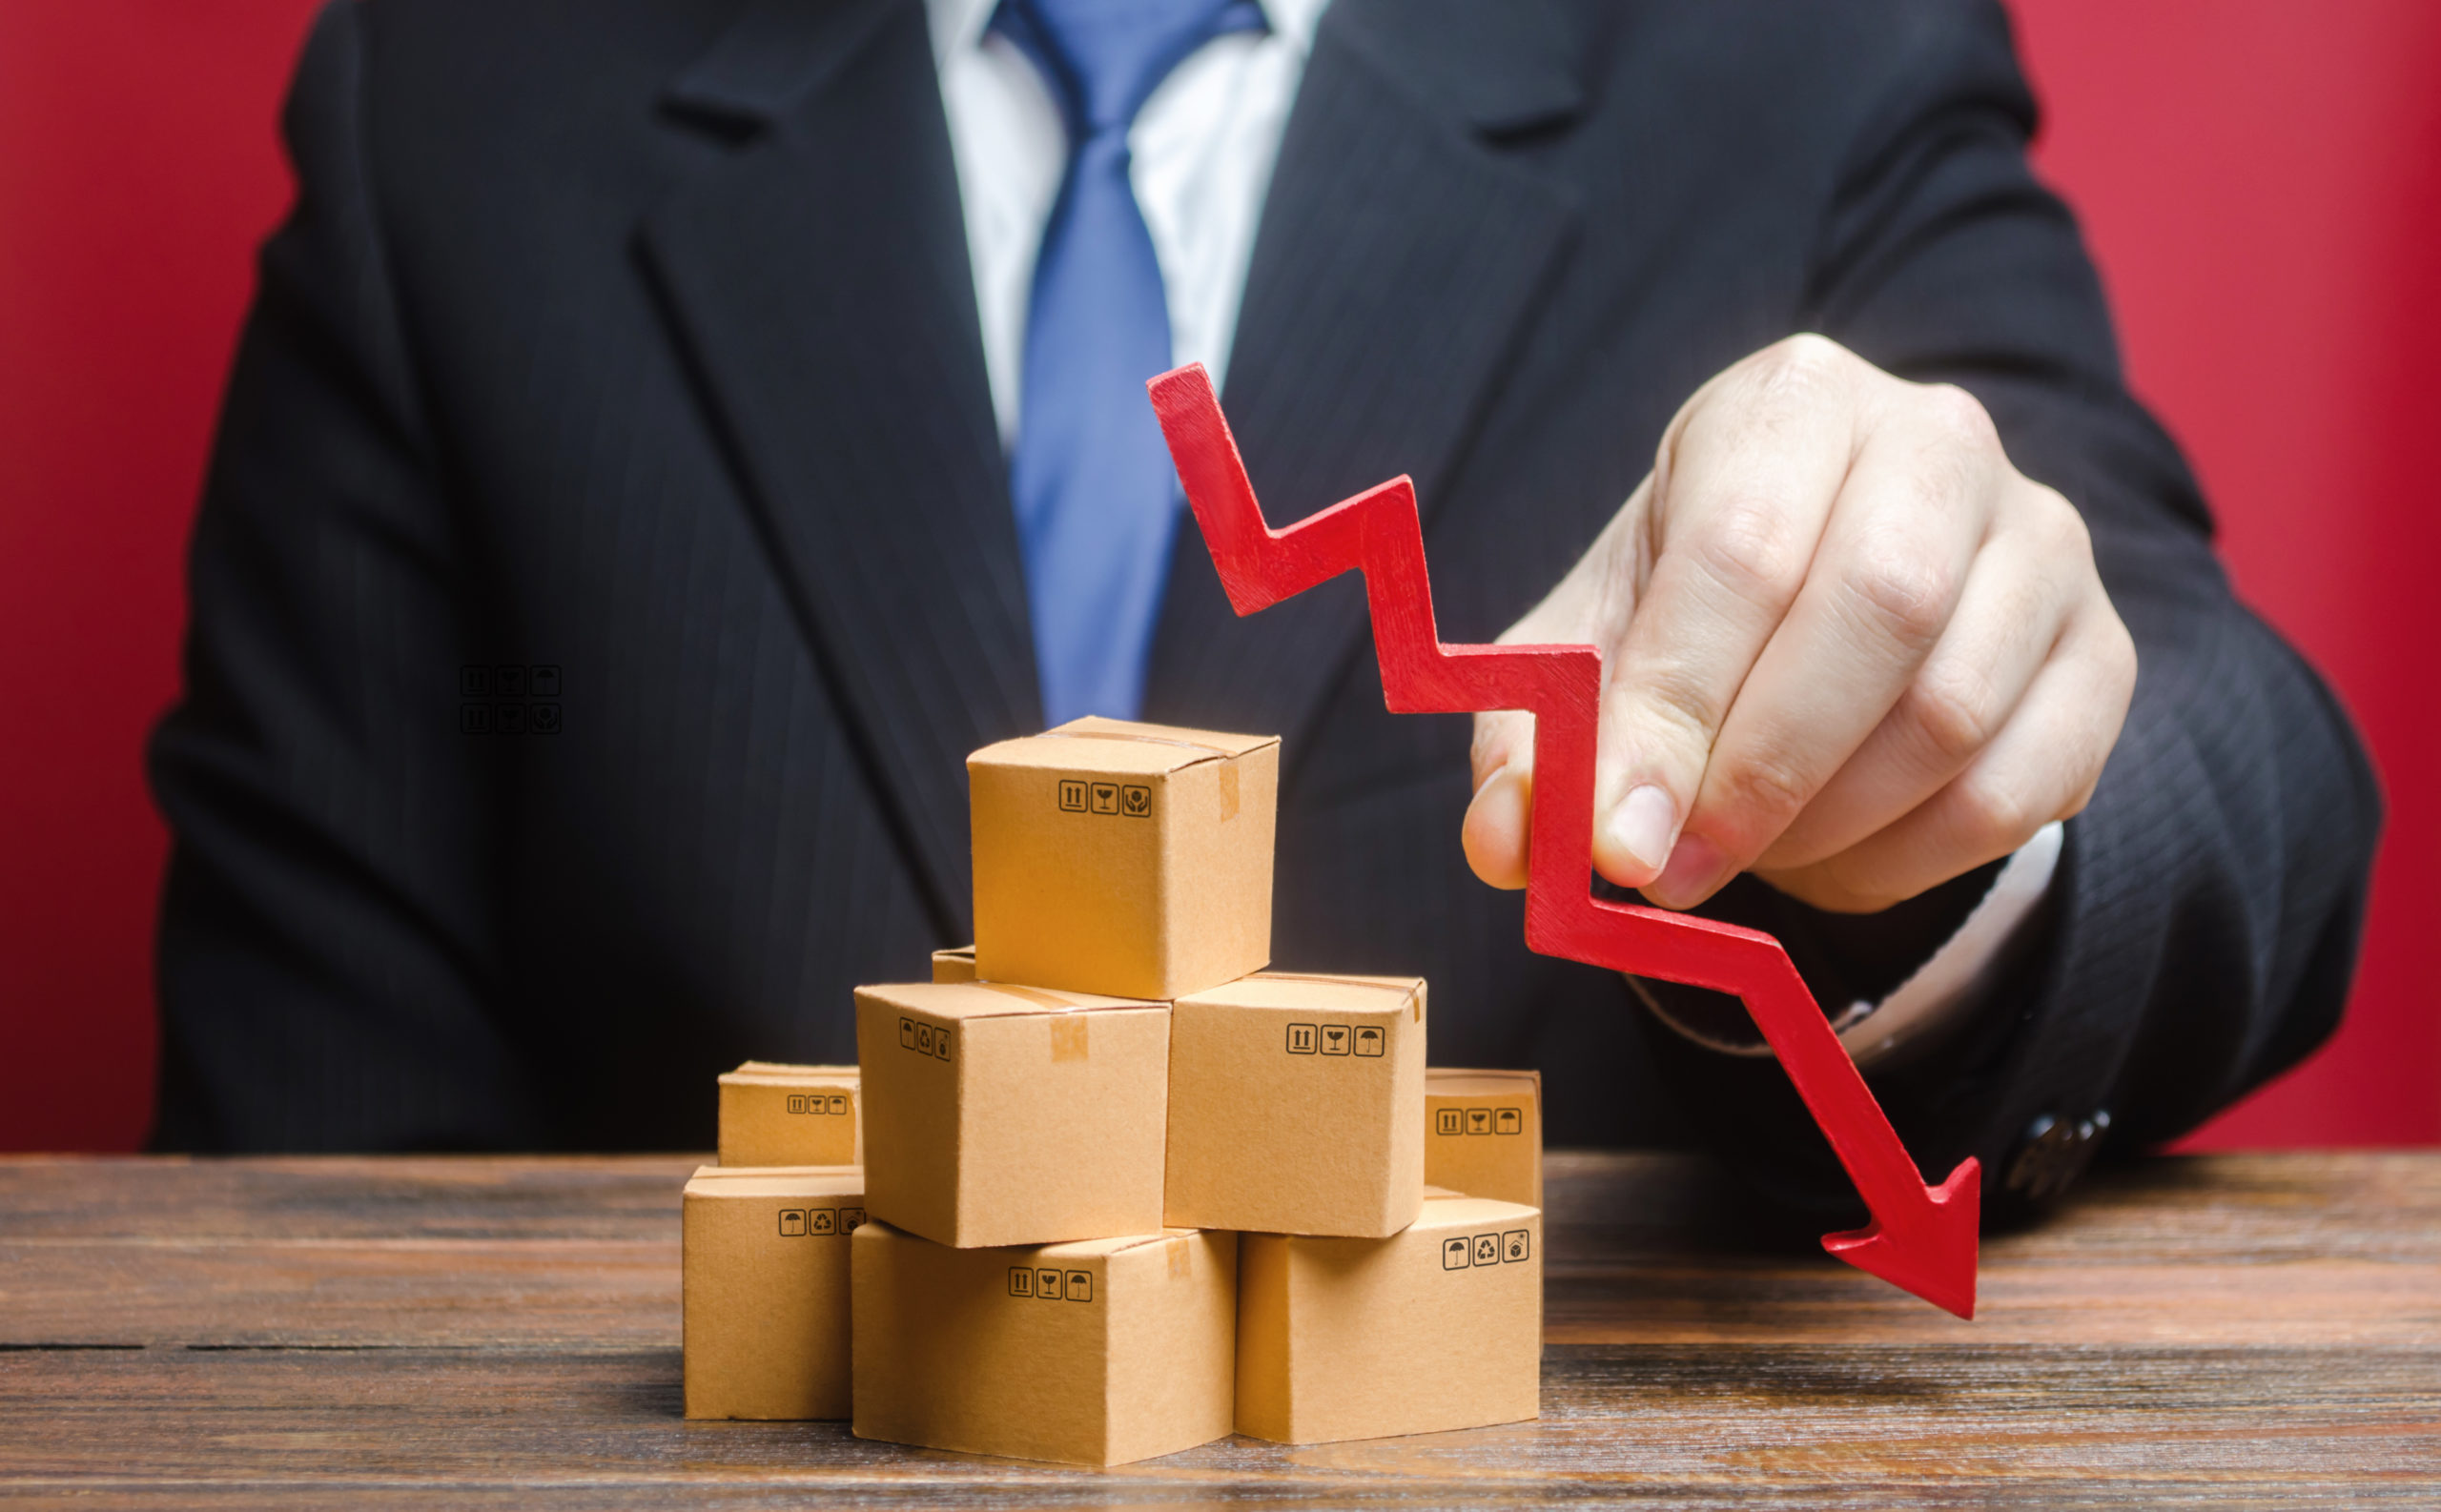 businessman-holding-a-red-arrow-pointing-down-above-boxes-stack-pile